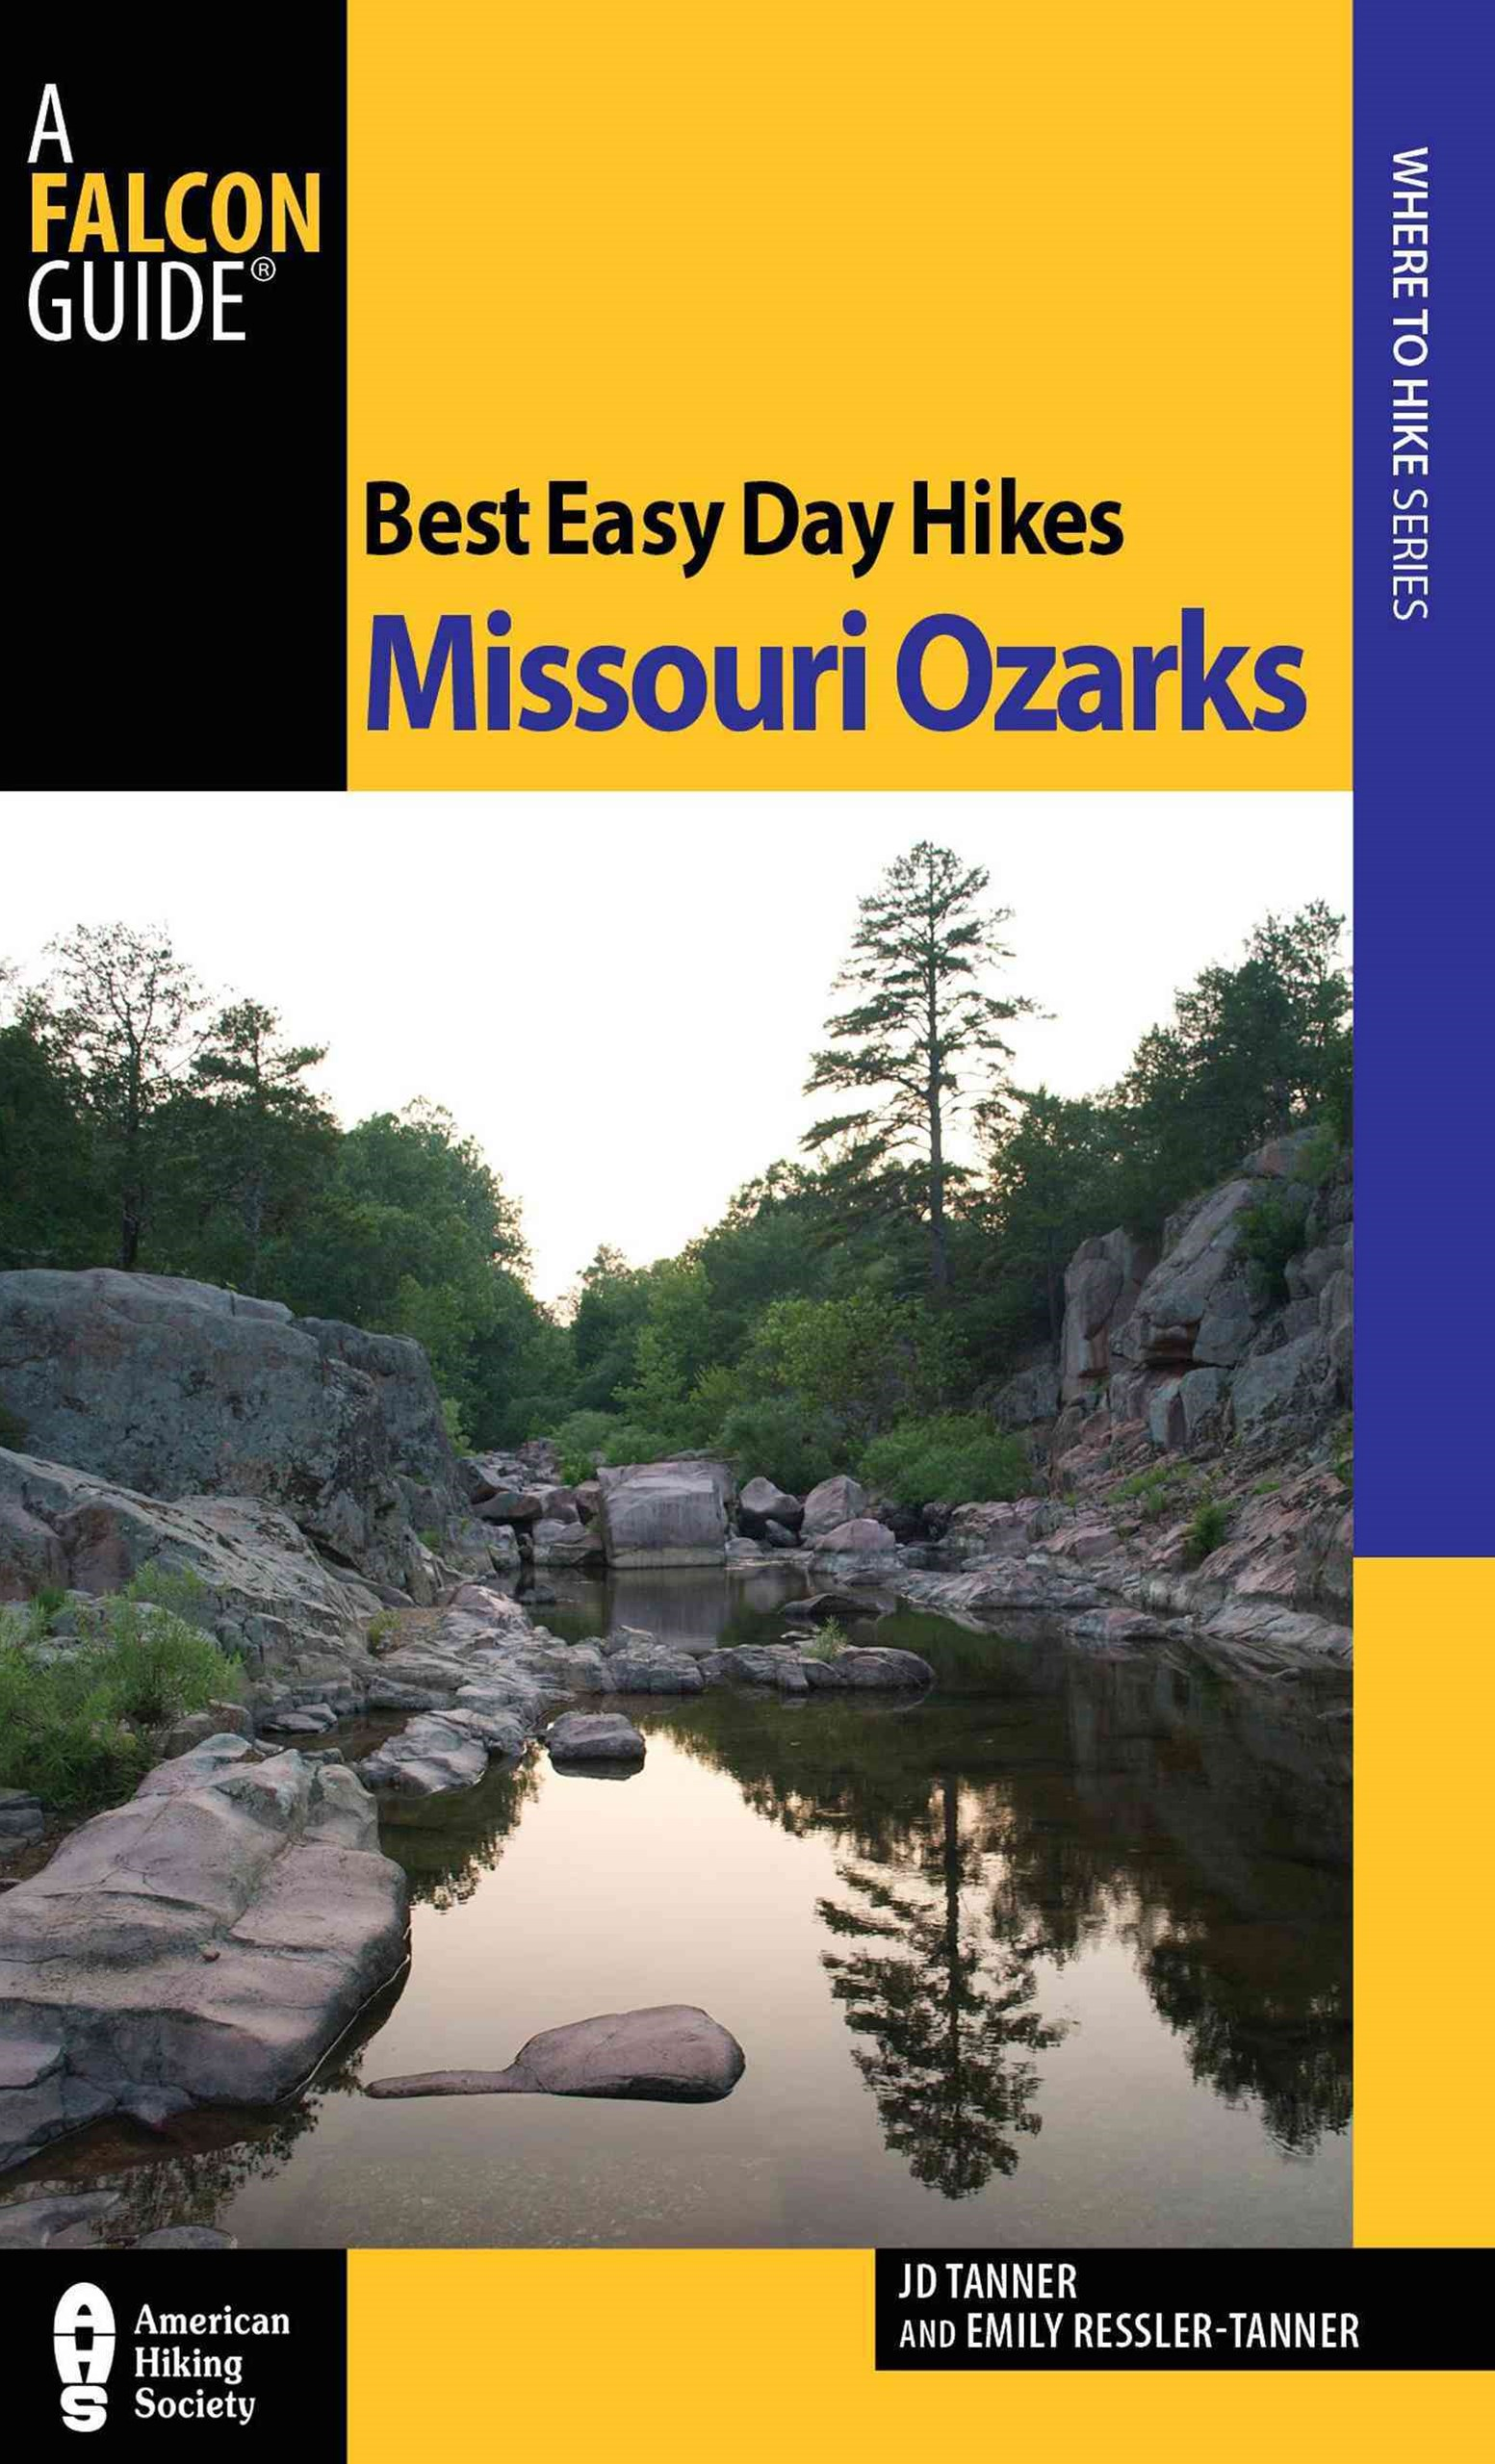 Best Easy Day Hikes - Missouri Ozarks